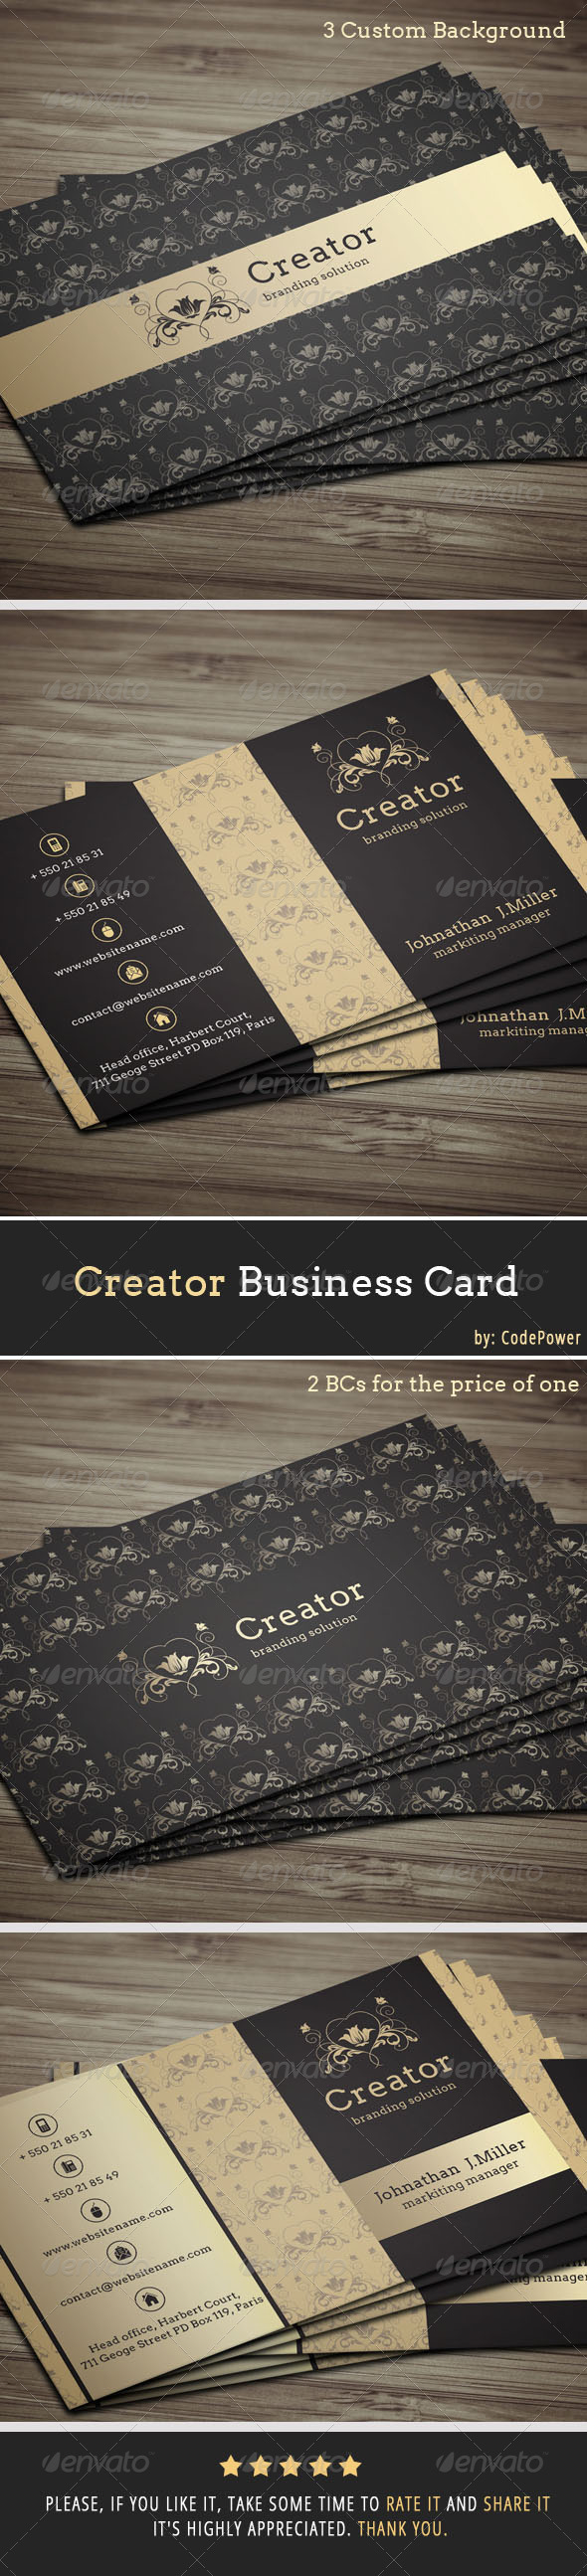 GraphicRiver Creator Business Card 7097701